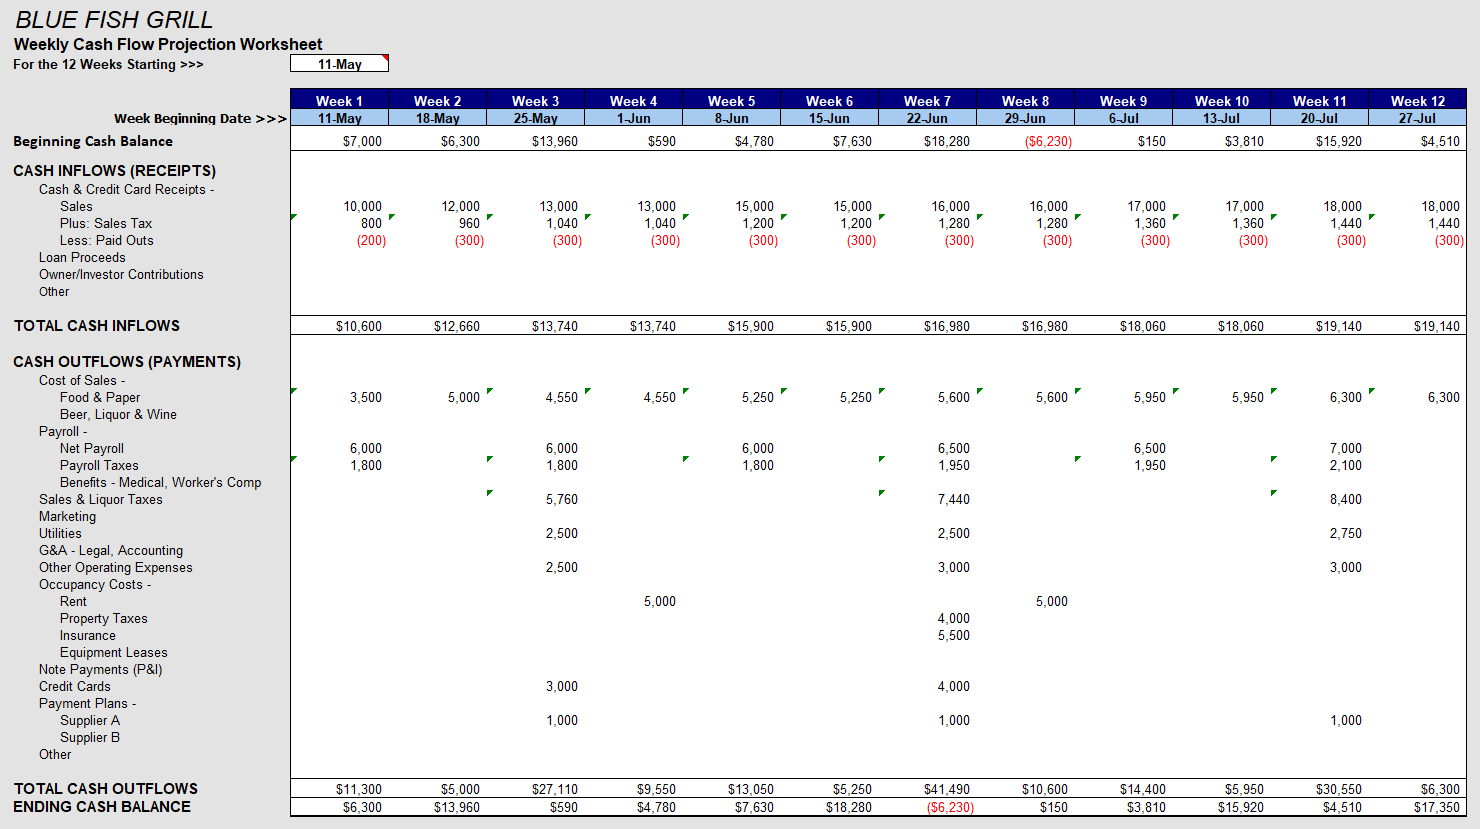 Weekly Cash Flow Worksheet